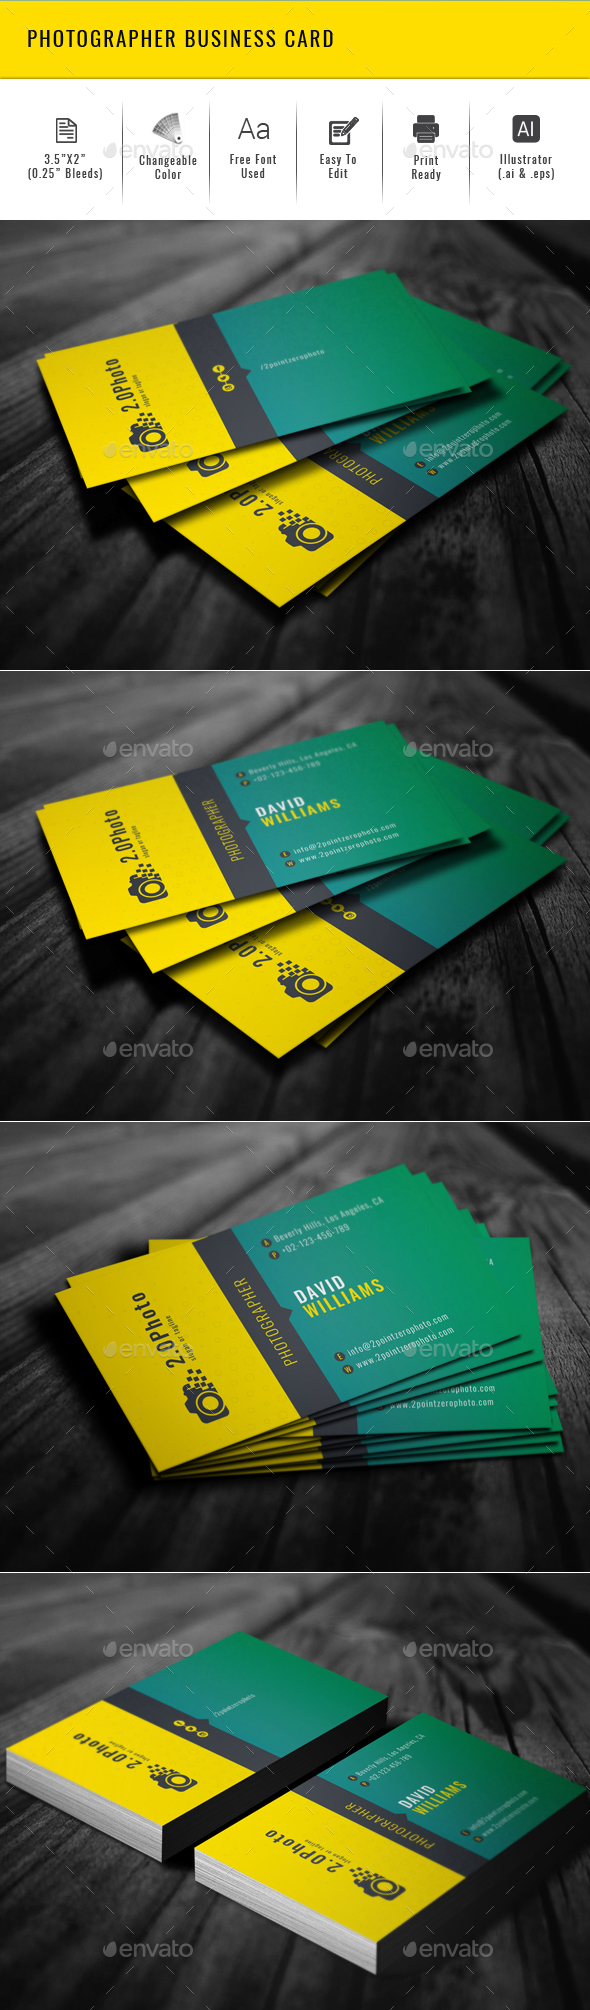 Photographer Business Card - Creative Business Cards